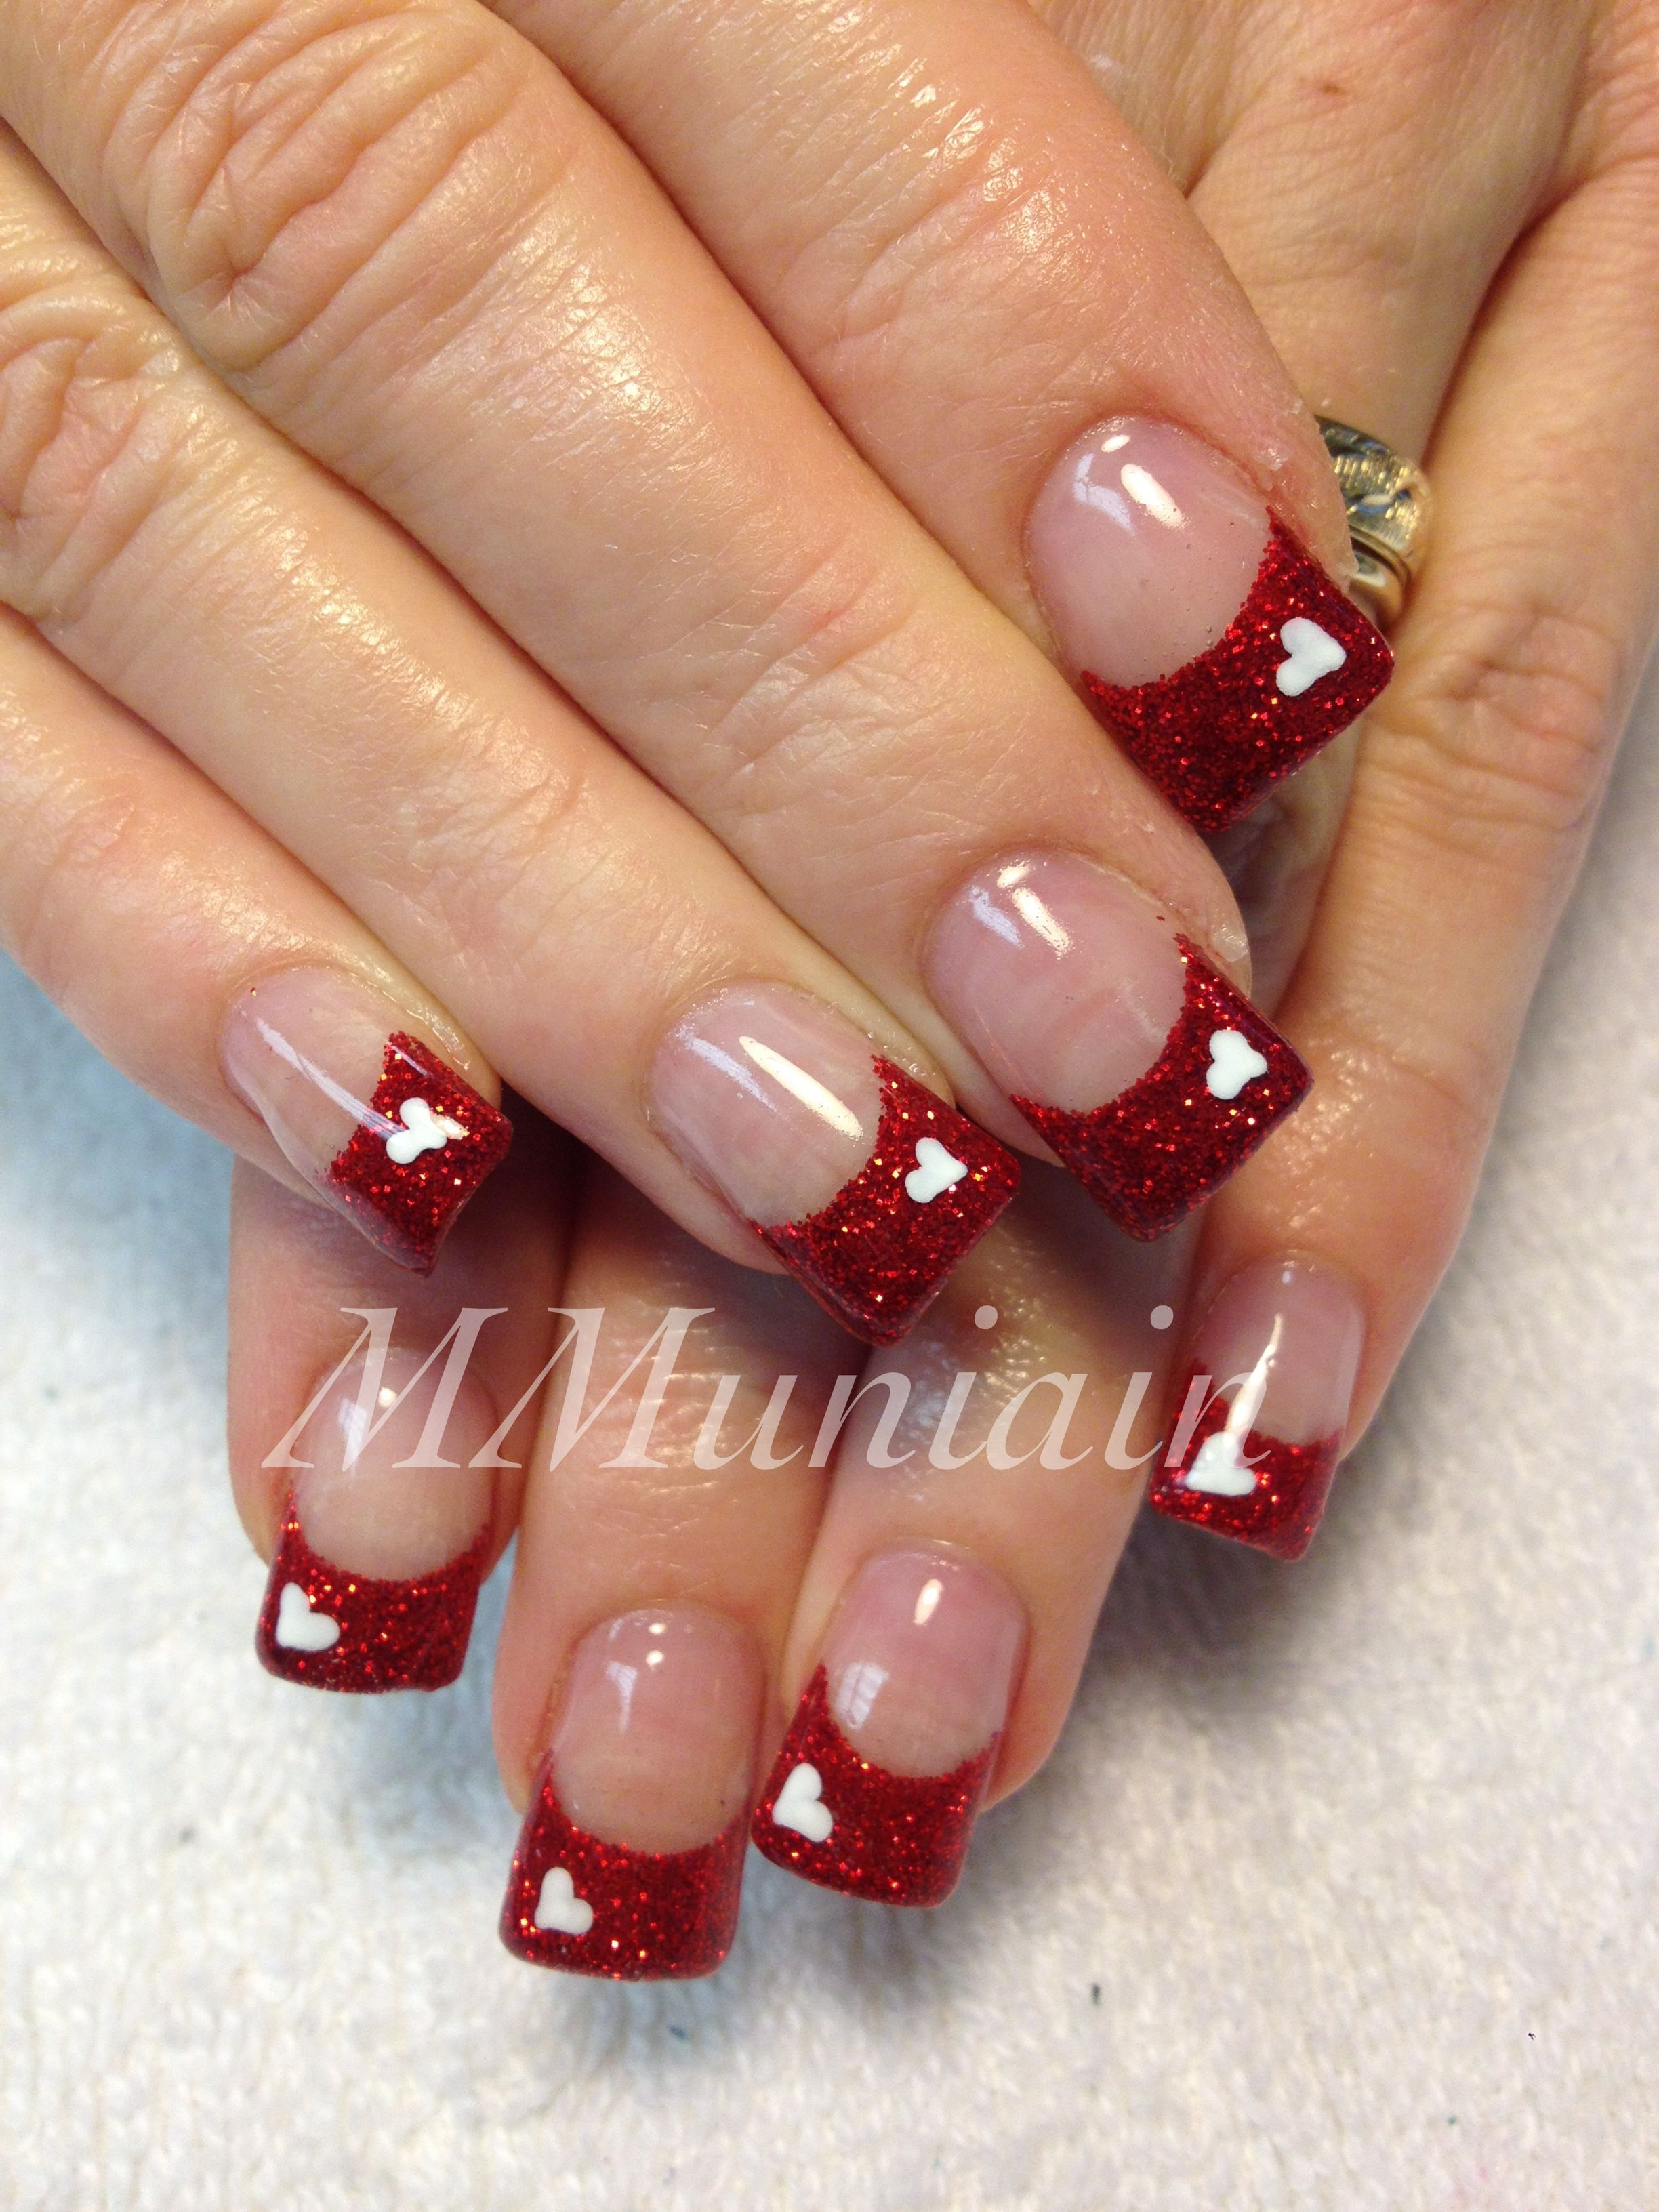 Valentine Nails I Would Do White Tips With Red Heart But Maybe Not This Is Growing On Me Nail Designs Valentines Valentines Nails Holiday Nails